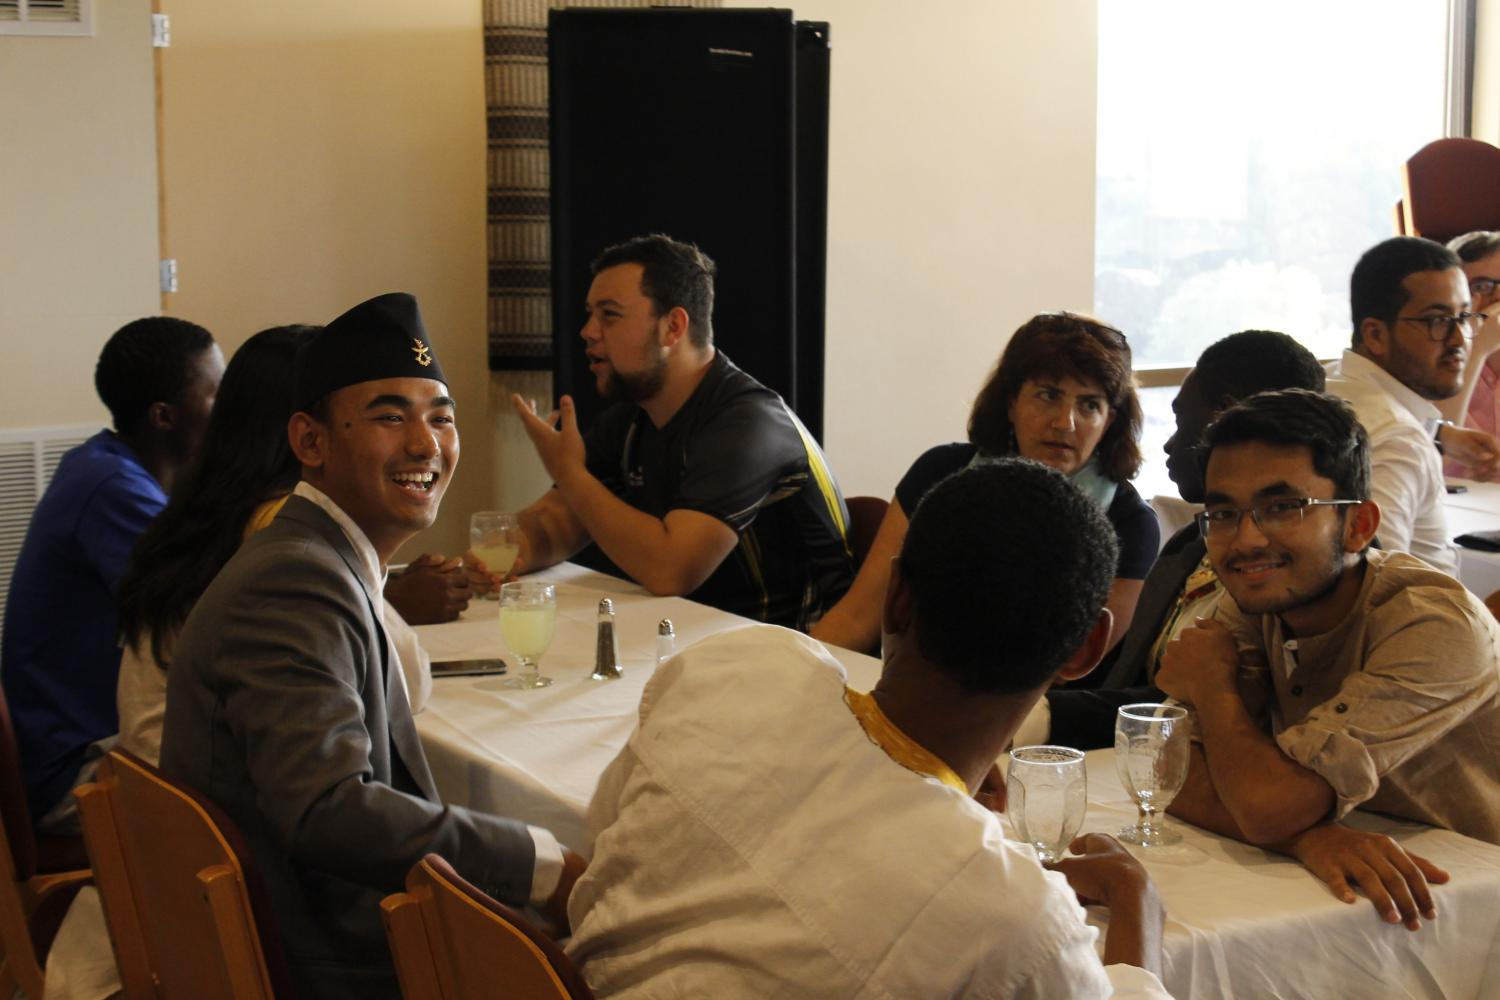 Yukesh Mikchan ('21) holds a conversation during the 2017 International Student Welcome Dinner.